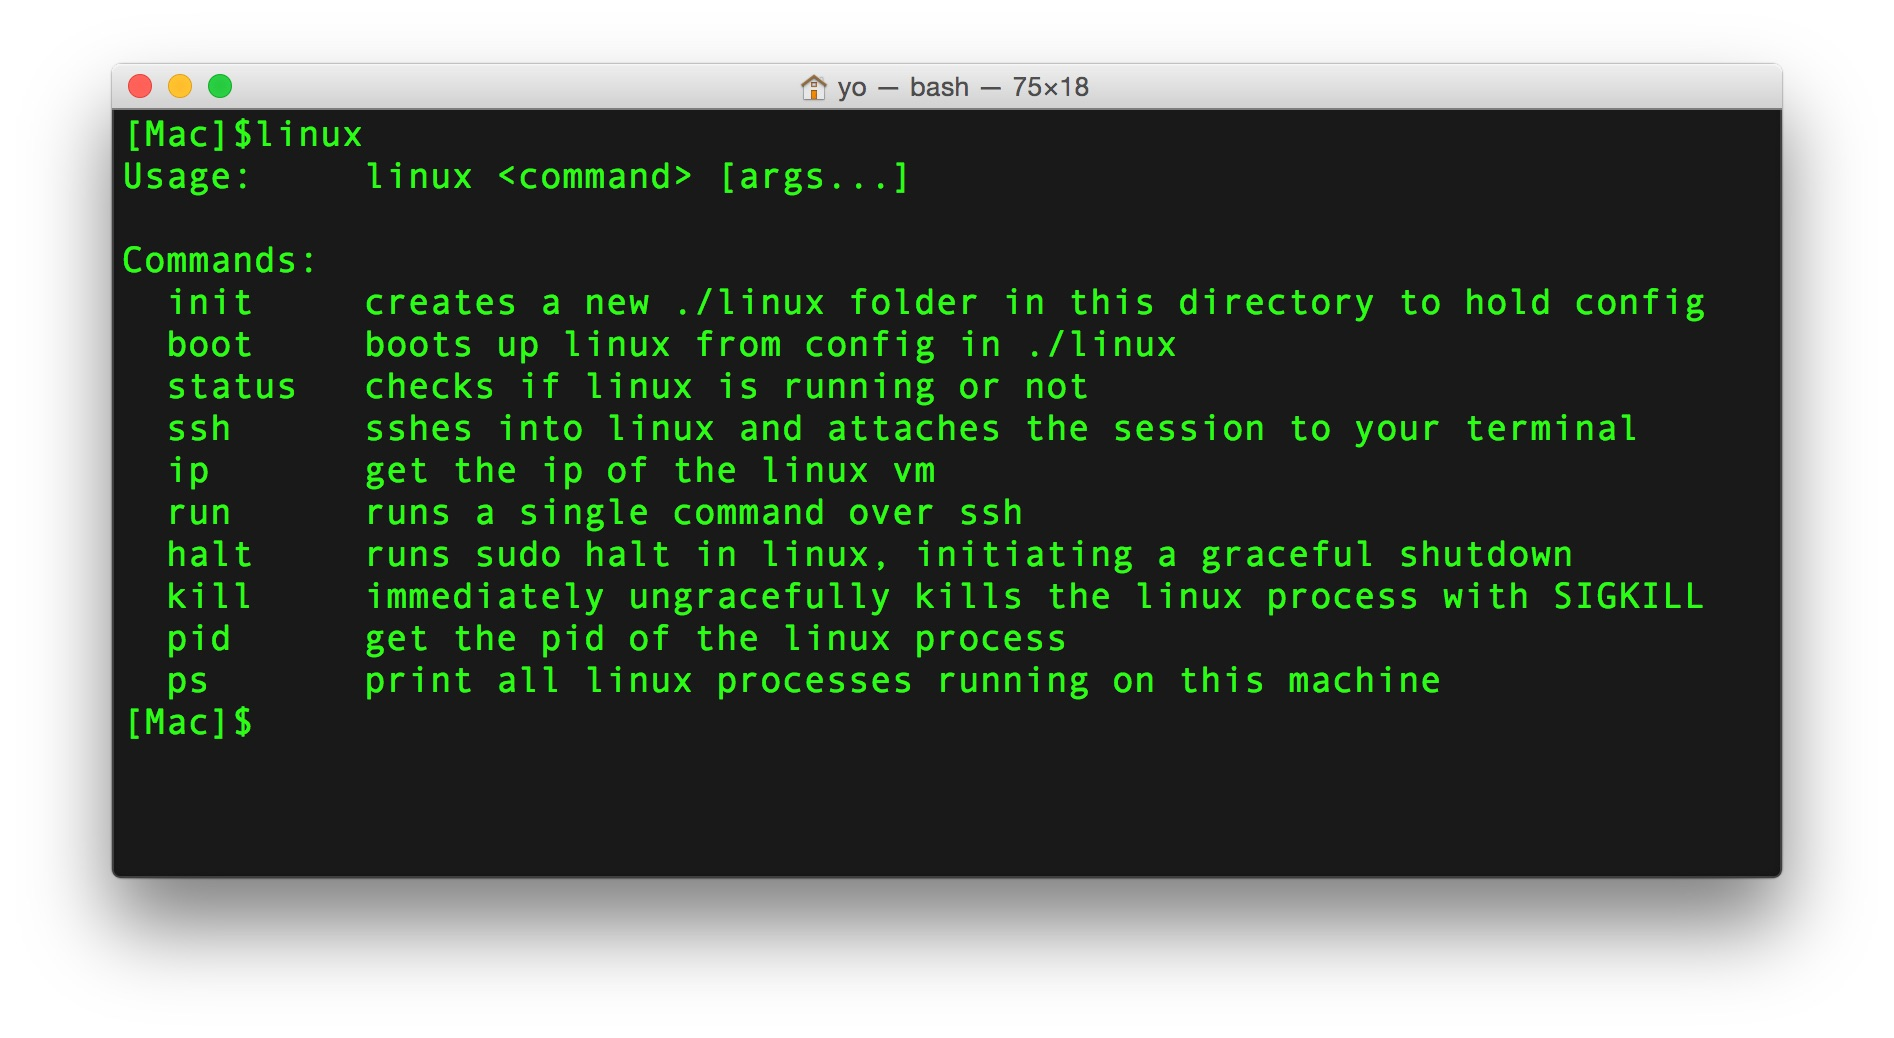 linux-command-on-yosemite